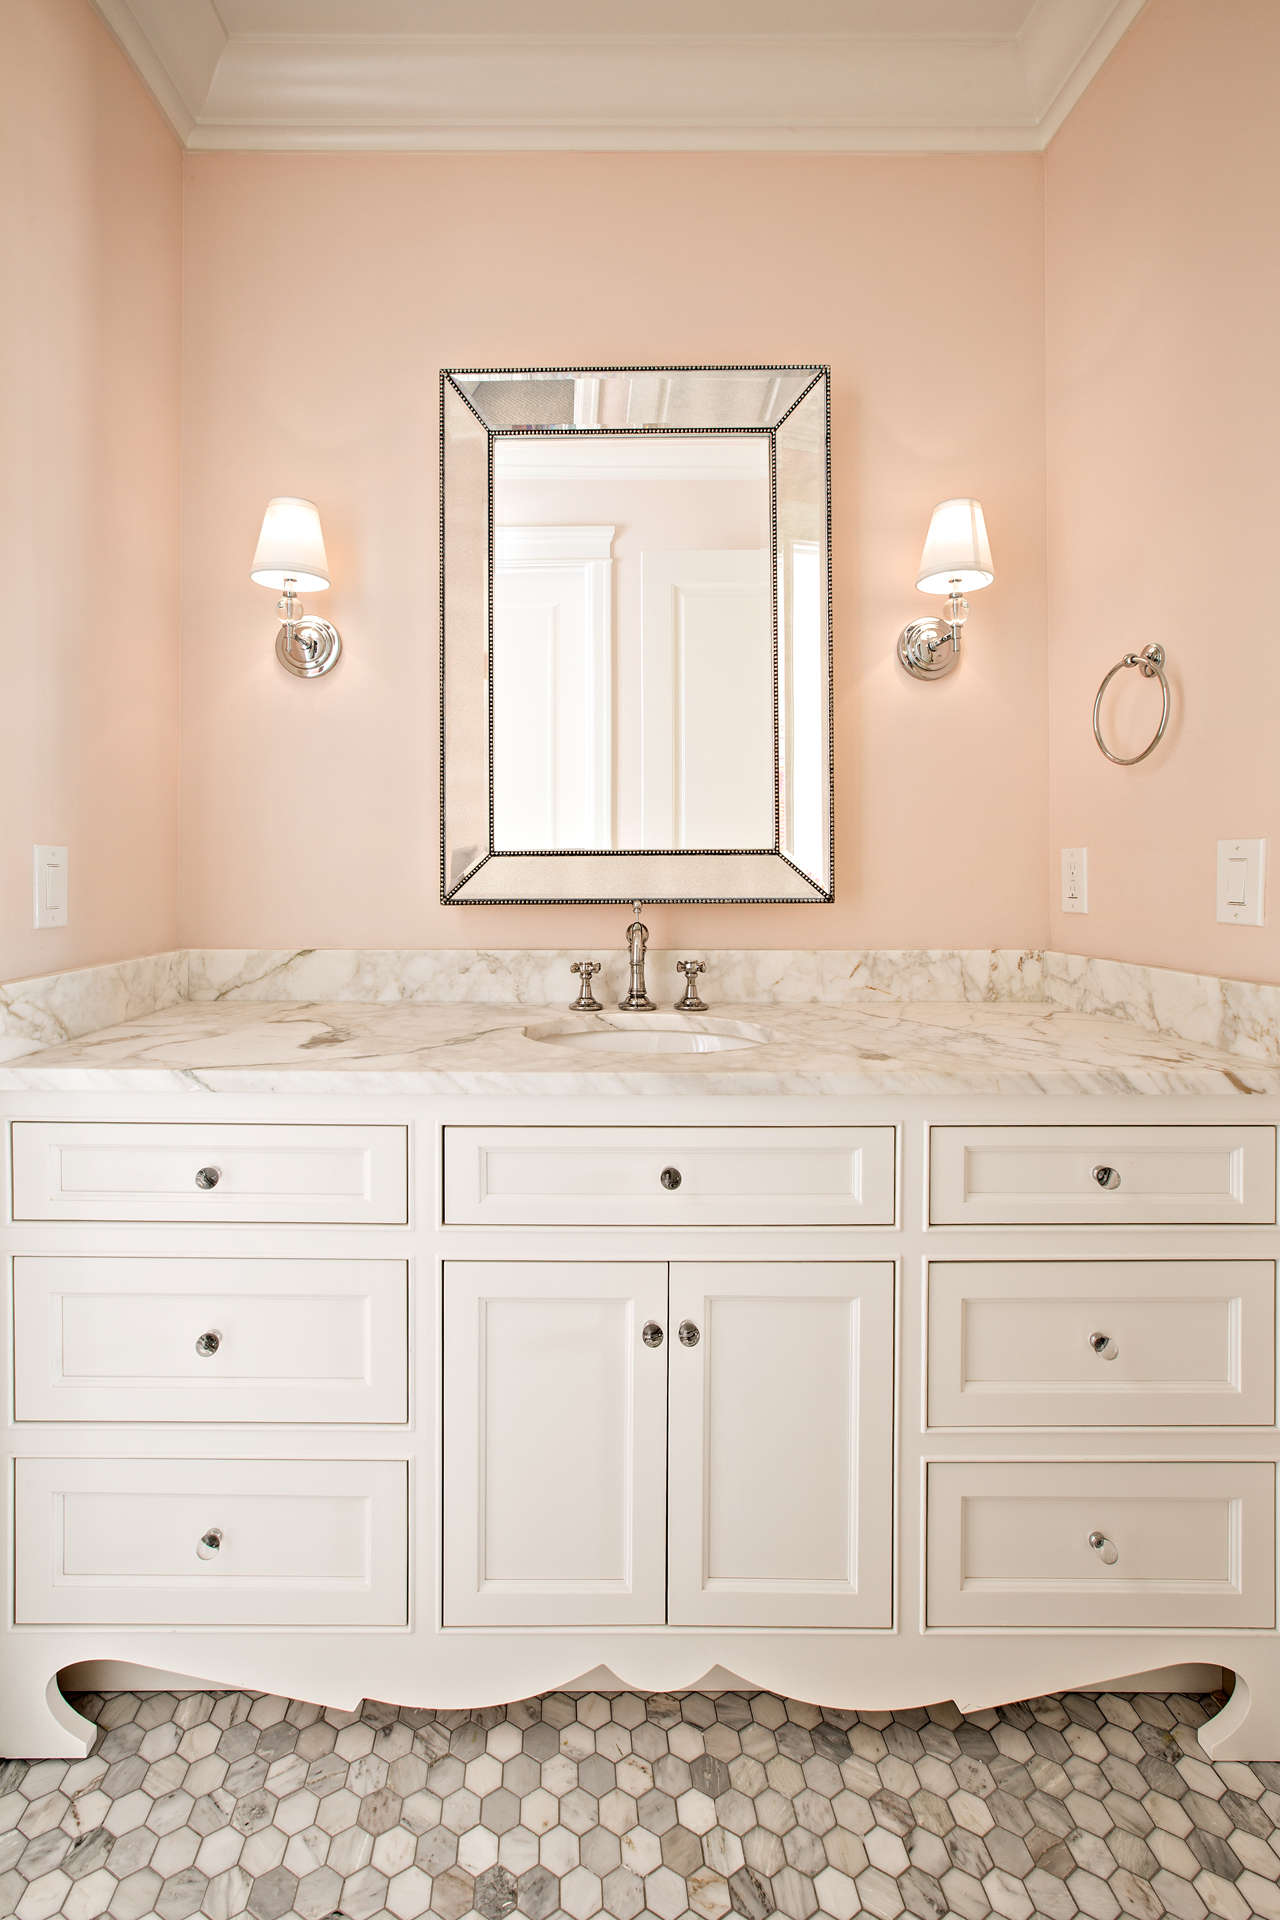 Blush pink walls in a beautiful powder room by The Fox Group.